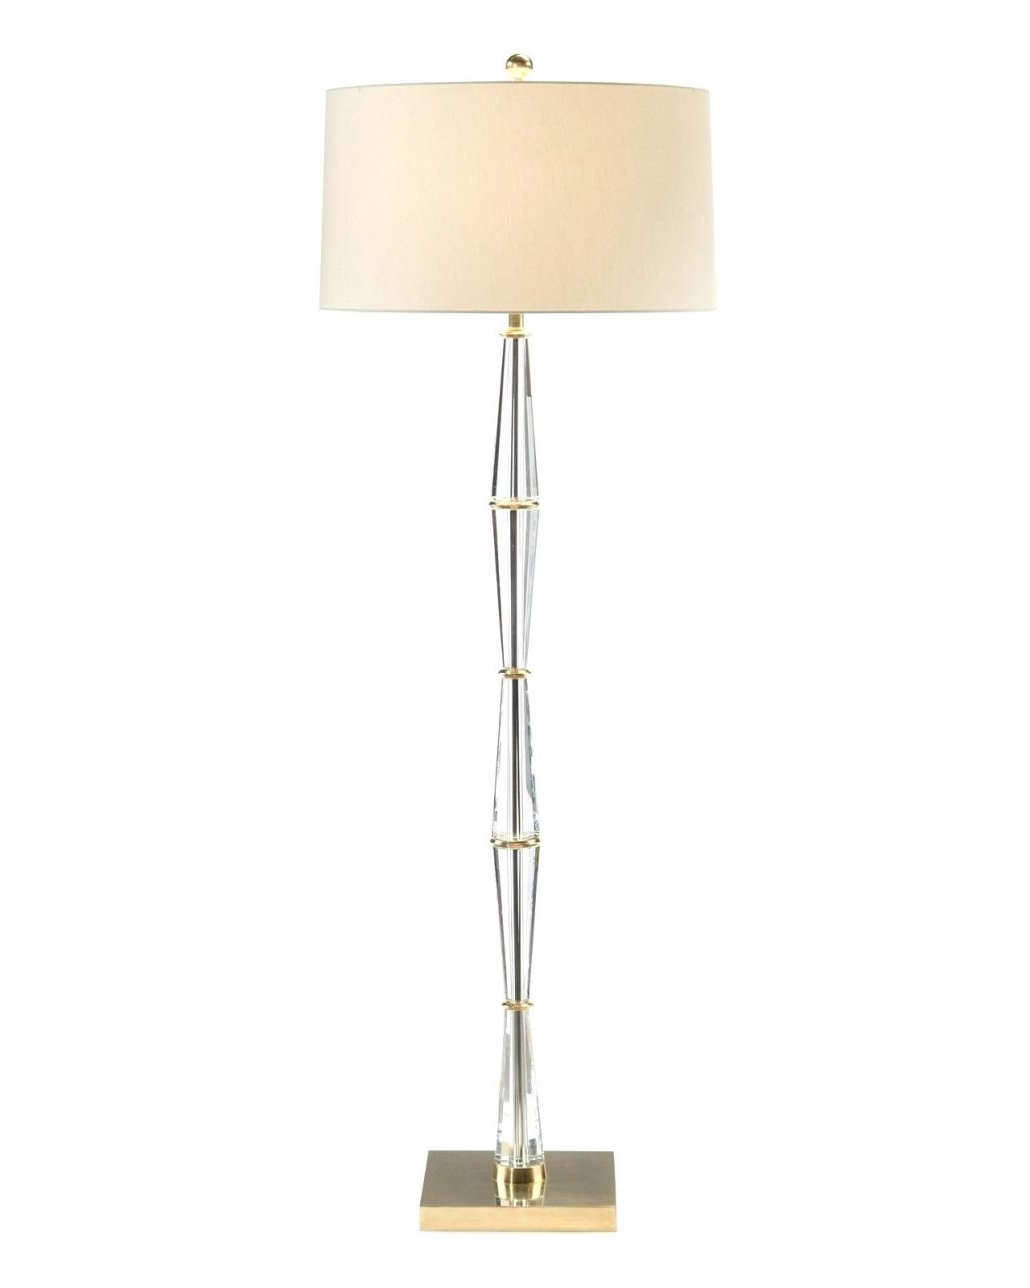 Chandeliers Design : Magnificent Floor Lamps Chrome Crystal Lamp Intended For 2019 Standing Chandeliers (View 5 of 20)